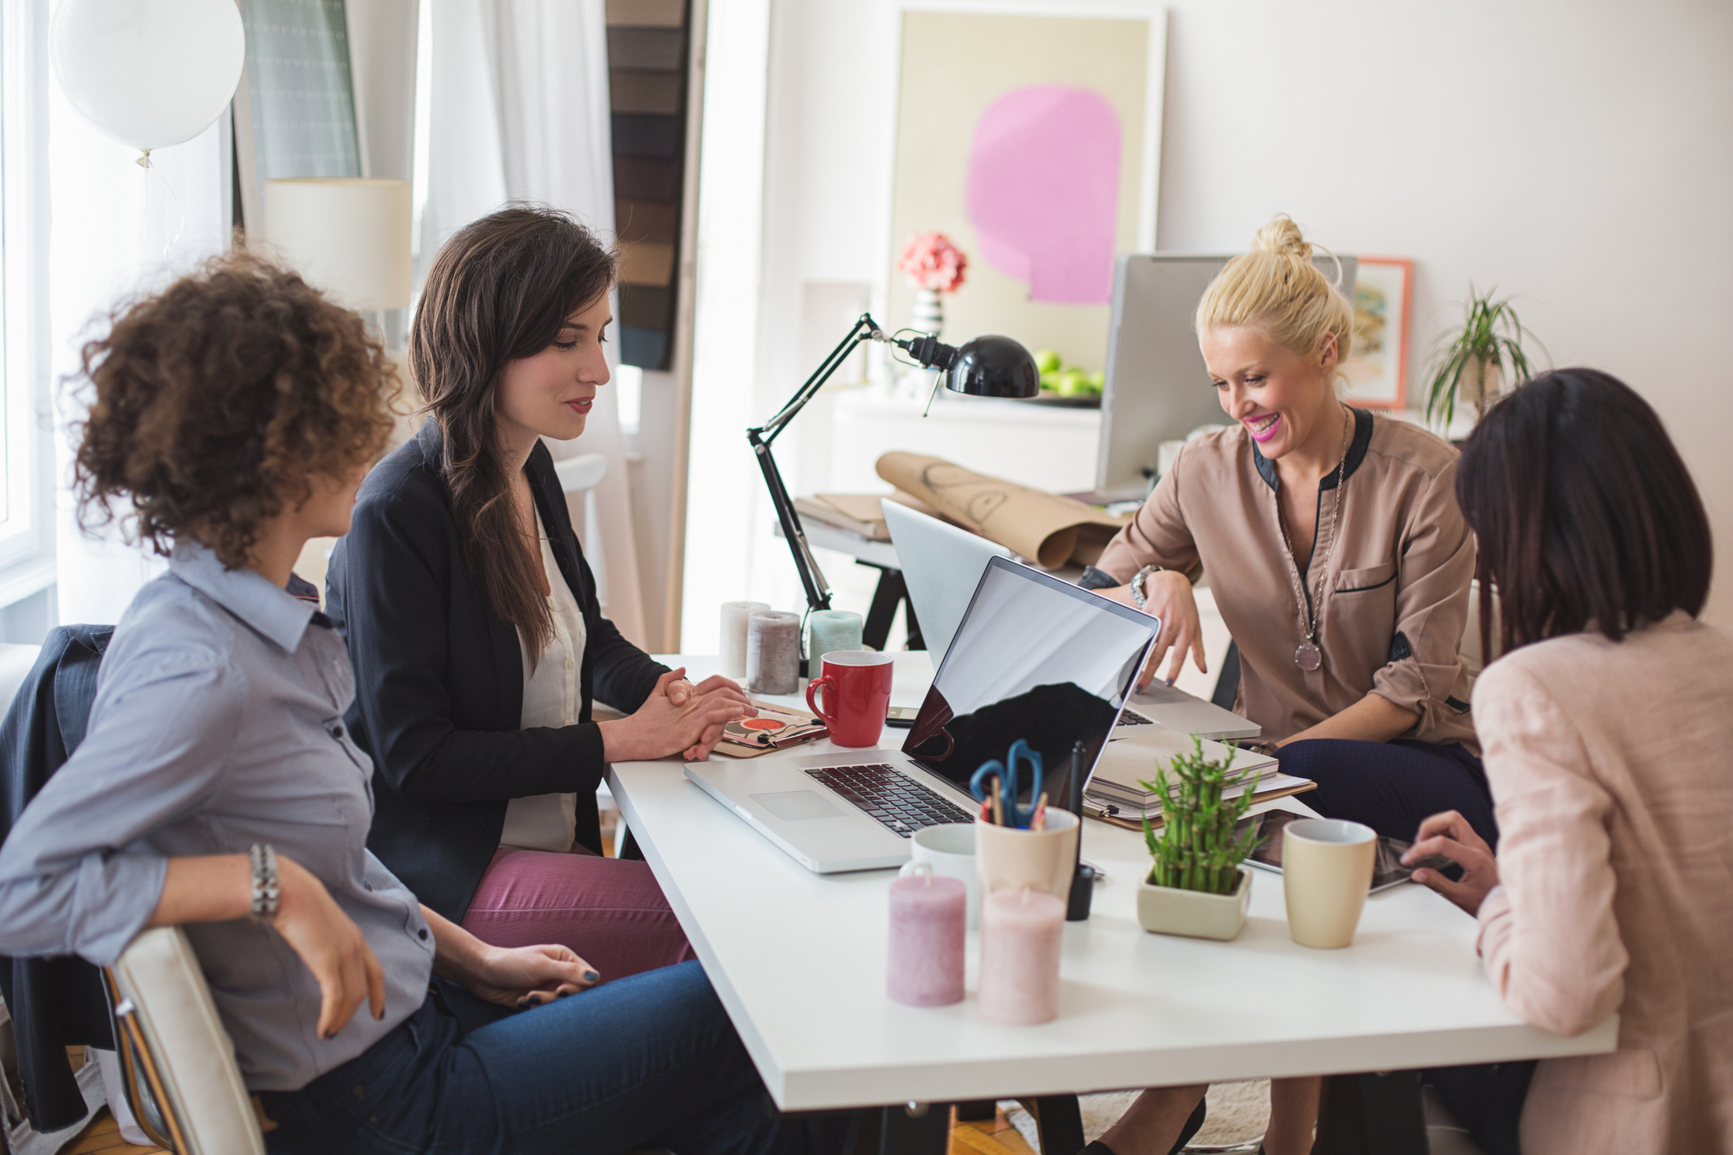 Group of businesswomen in a casual business meeting.